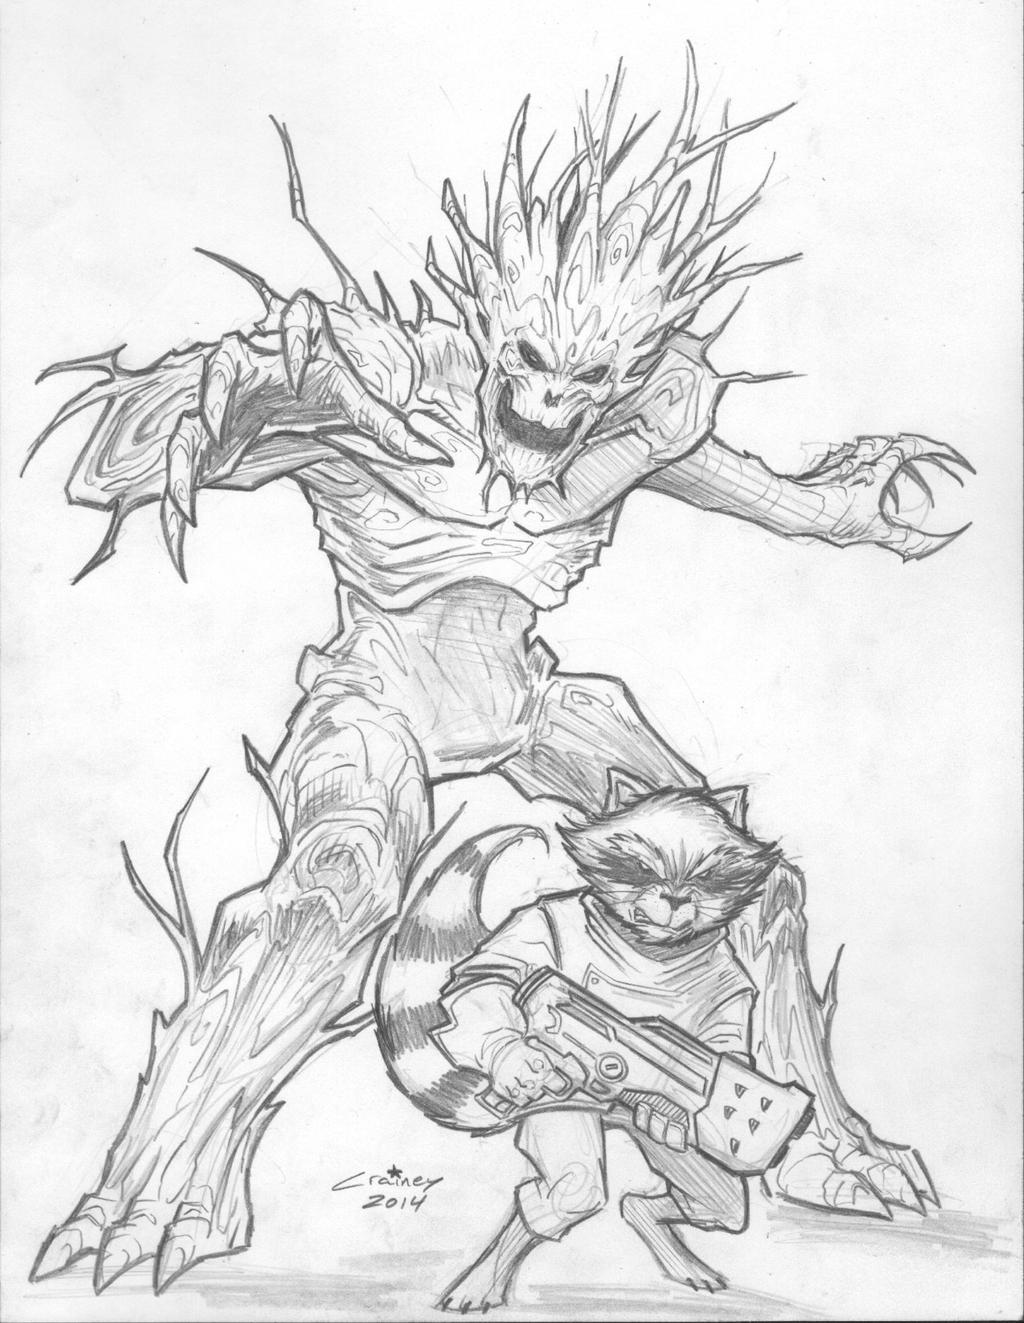 Rocket and Groot by c-crain on DeviantArt